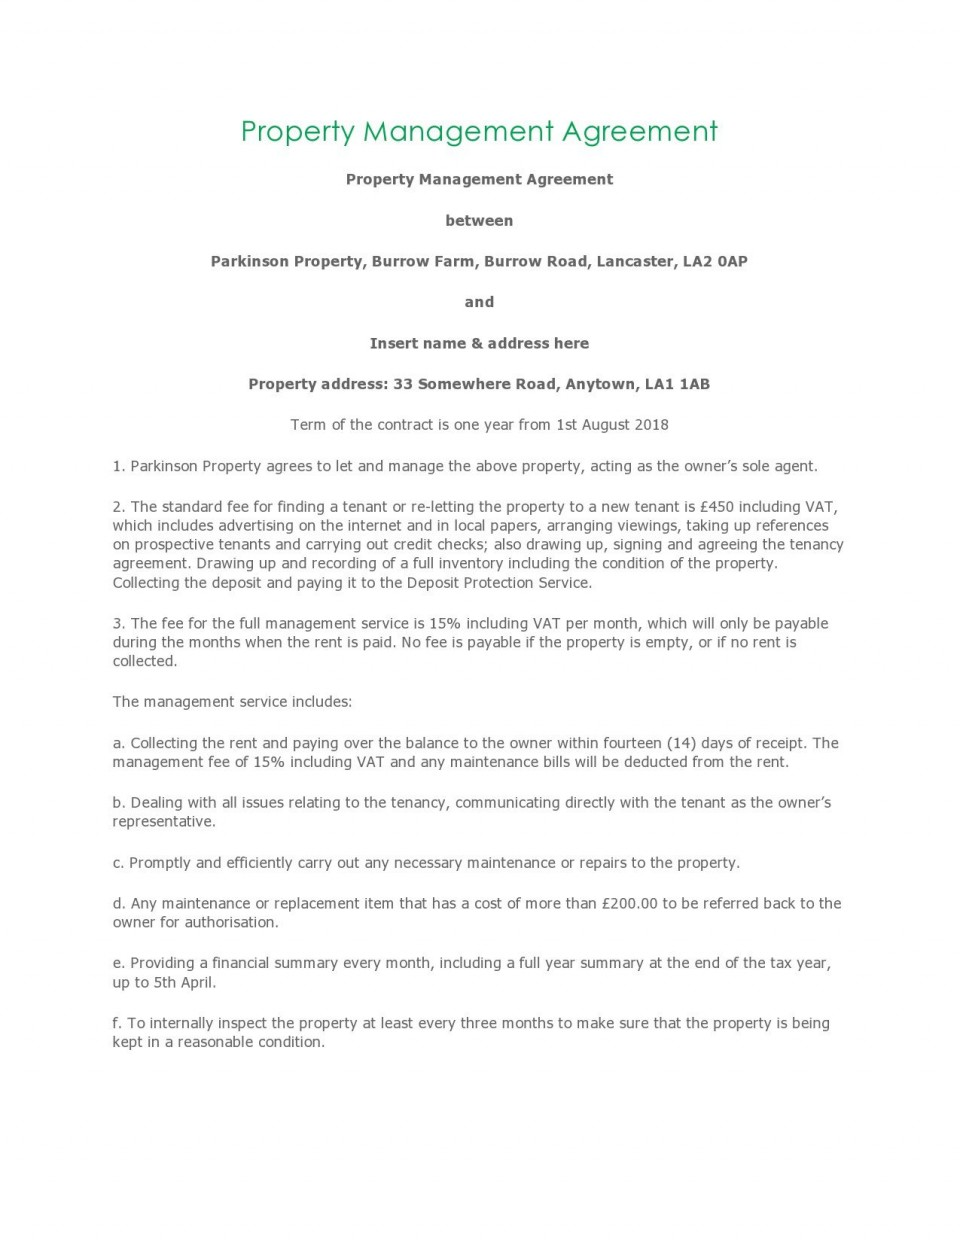 006 Dreaded Property Management Contract Sample Example  Agreement Template Pdf Company Free Uk960